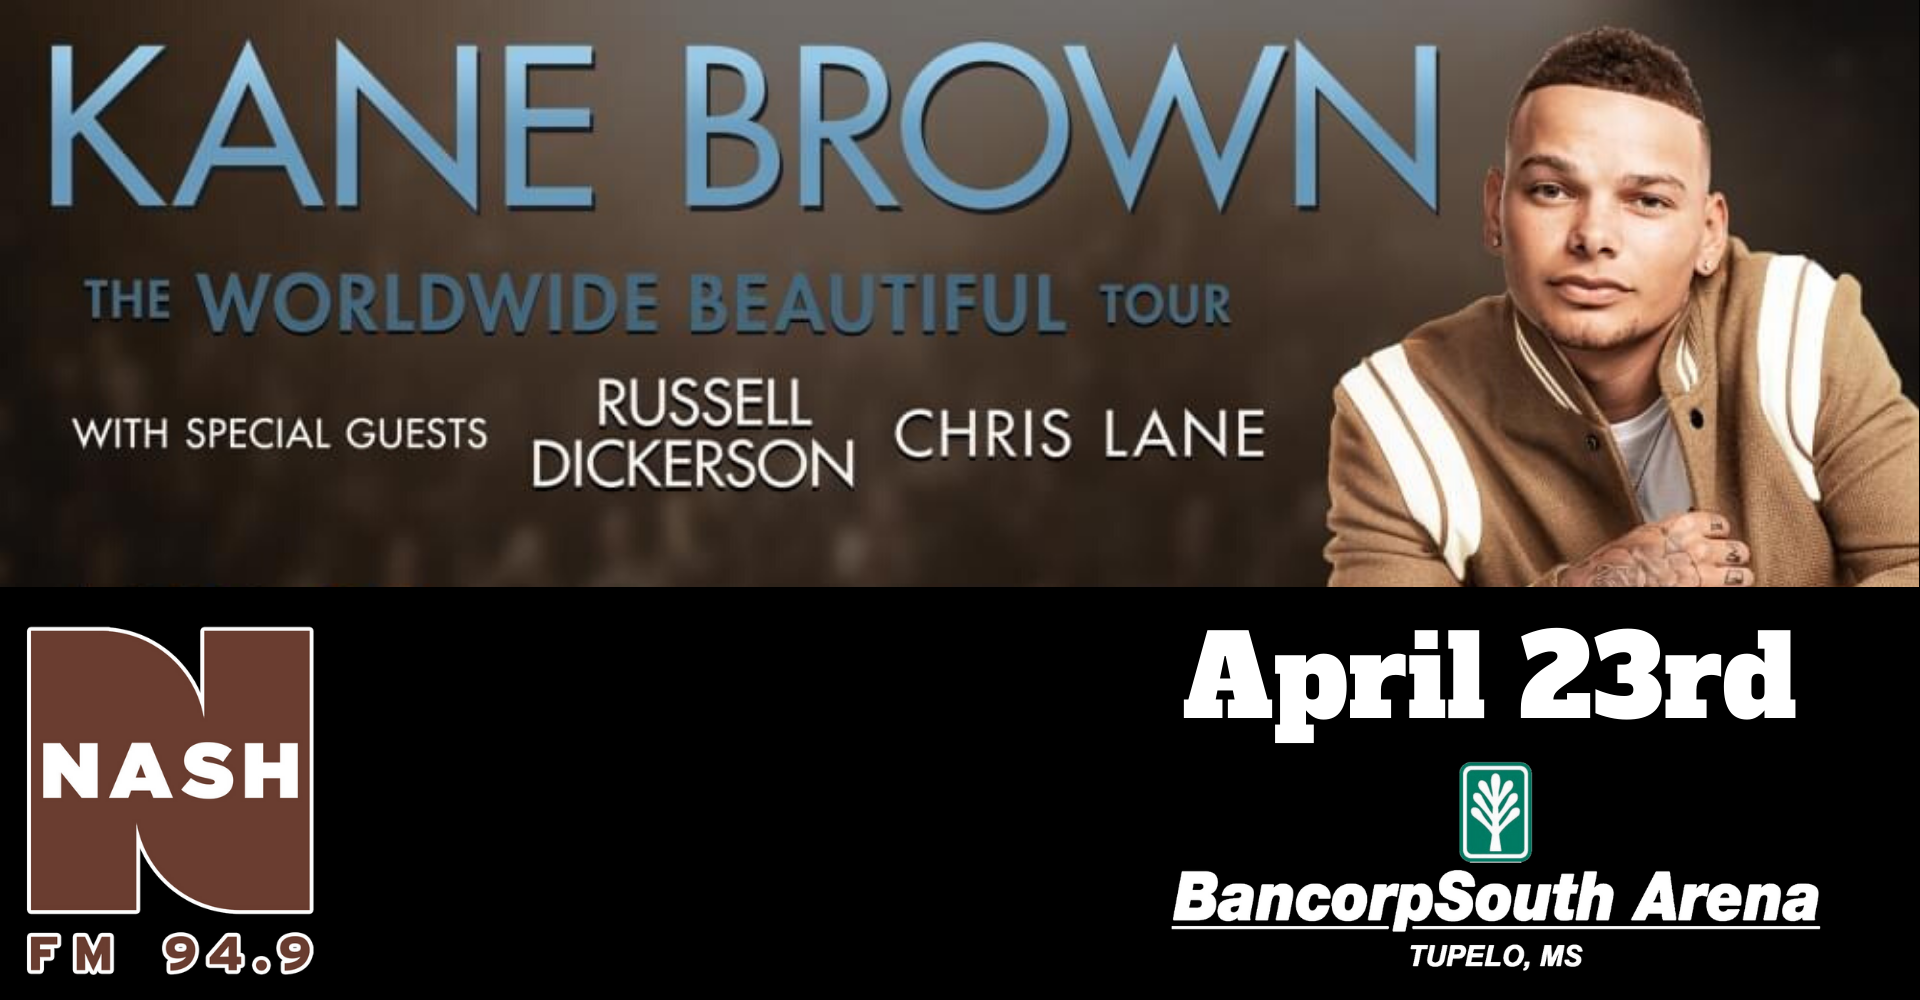 Kane Brown BCS Arena April 23rd